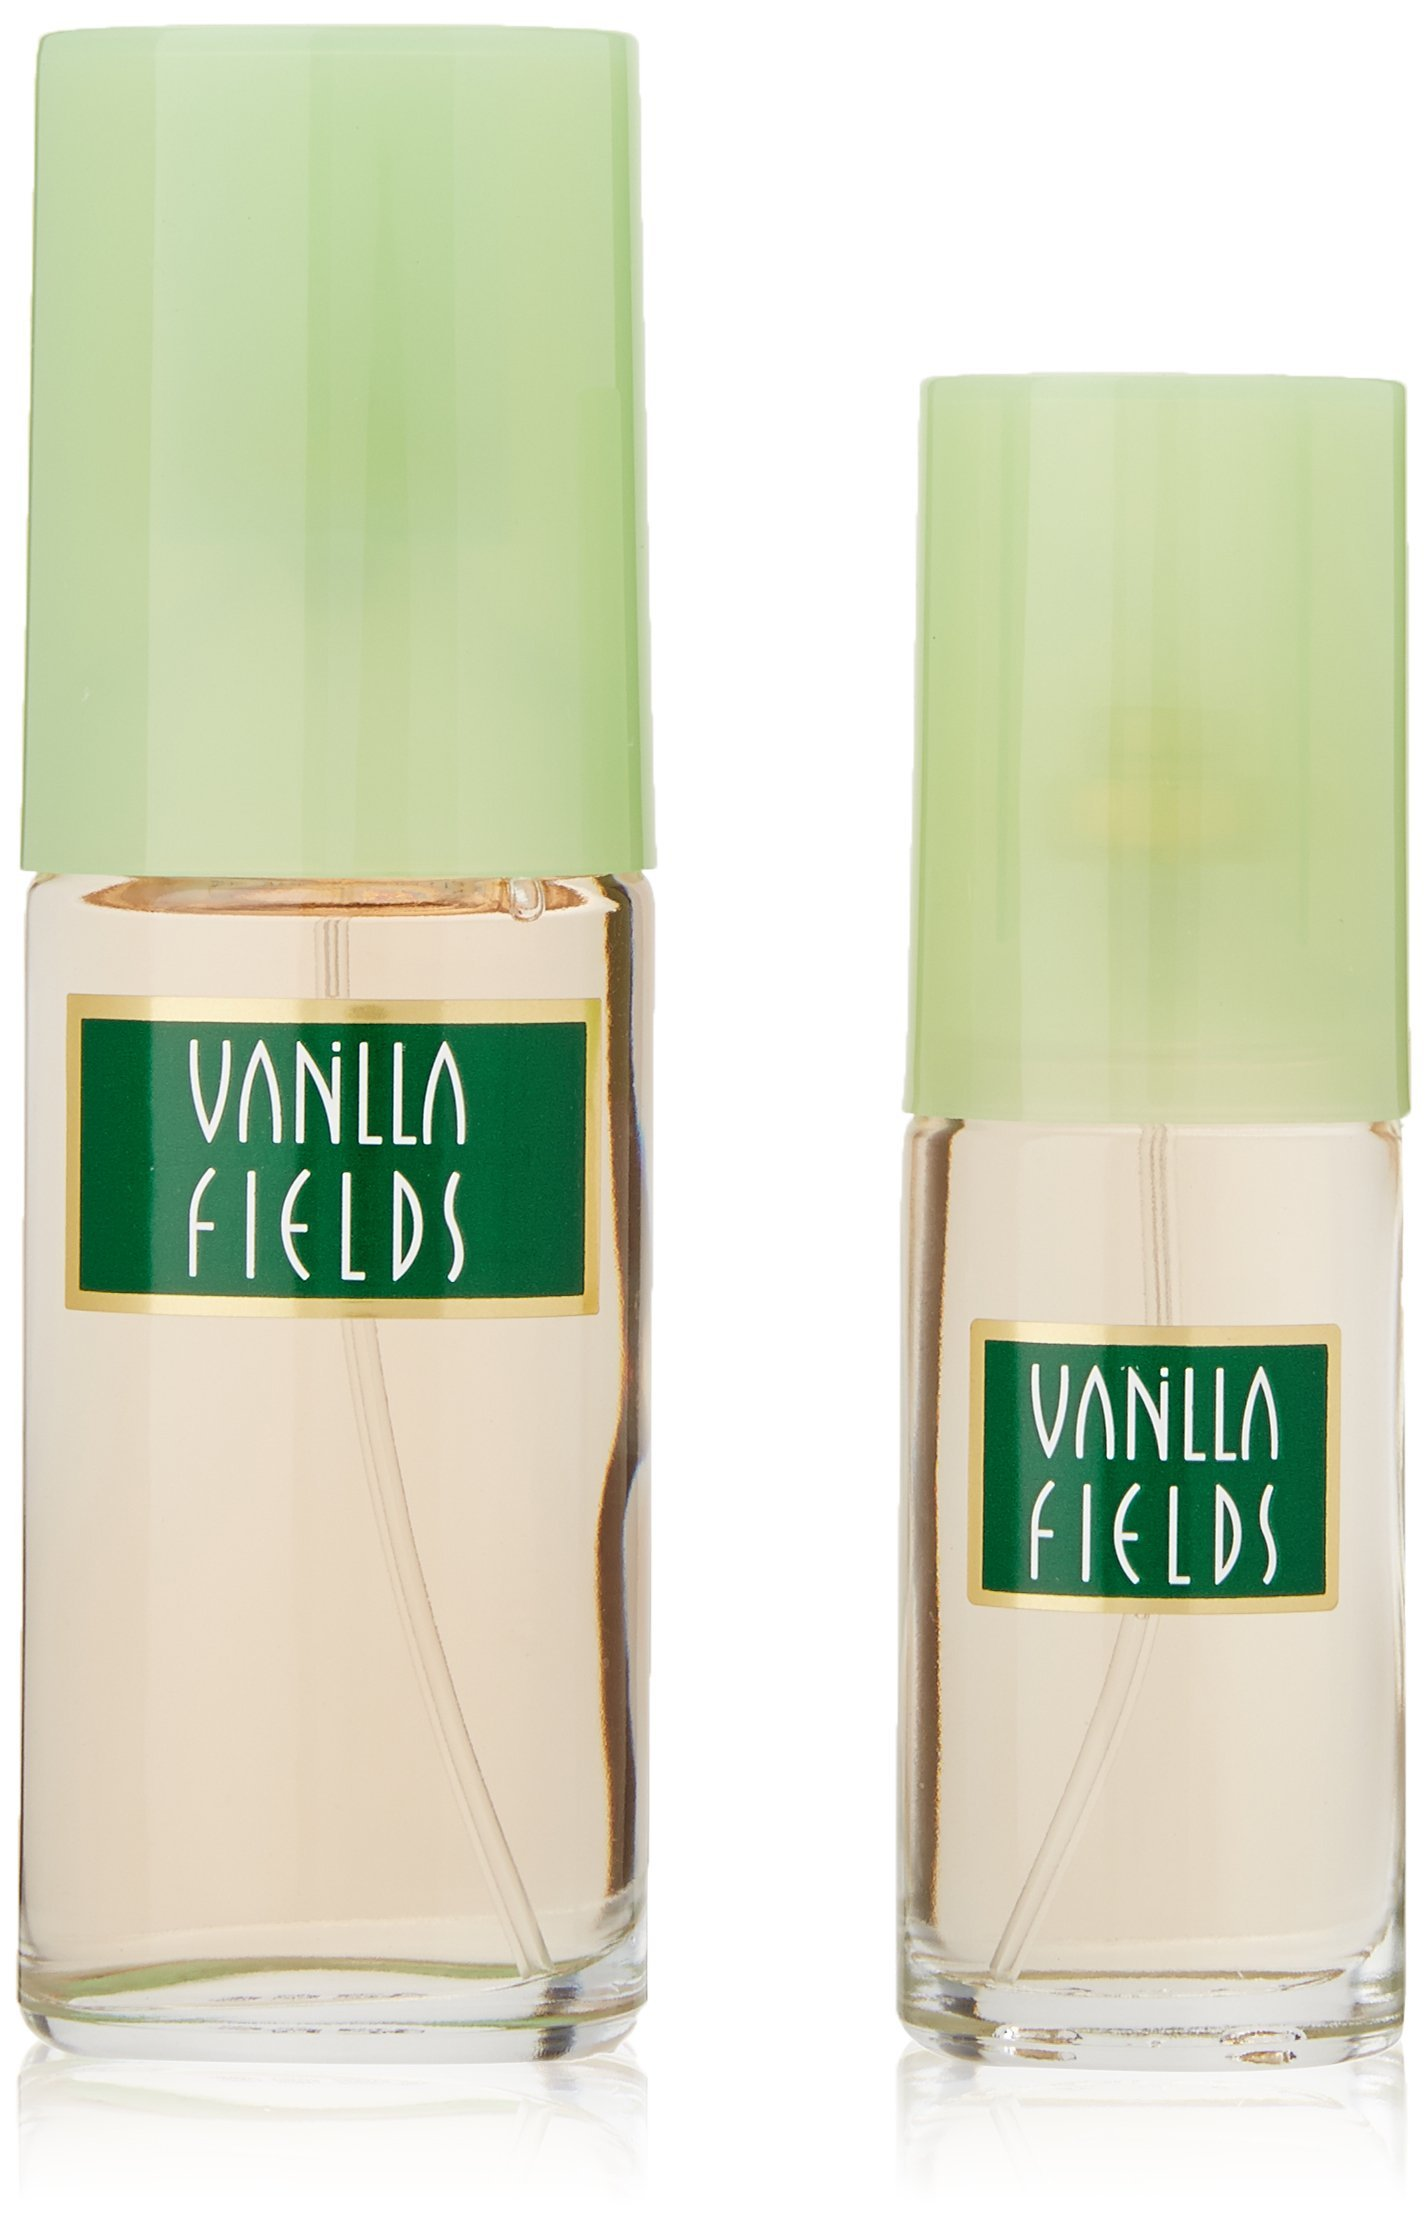 Vanilla Fields by Coty 2-piece Gift Set (Cologne Spray 2.0 oz. and Cologne Spray 1.0 oz.) by Coty